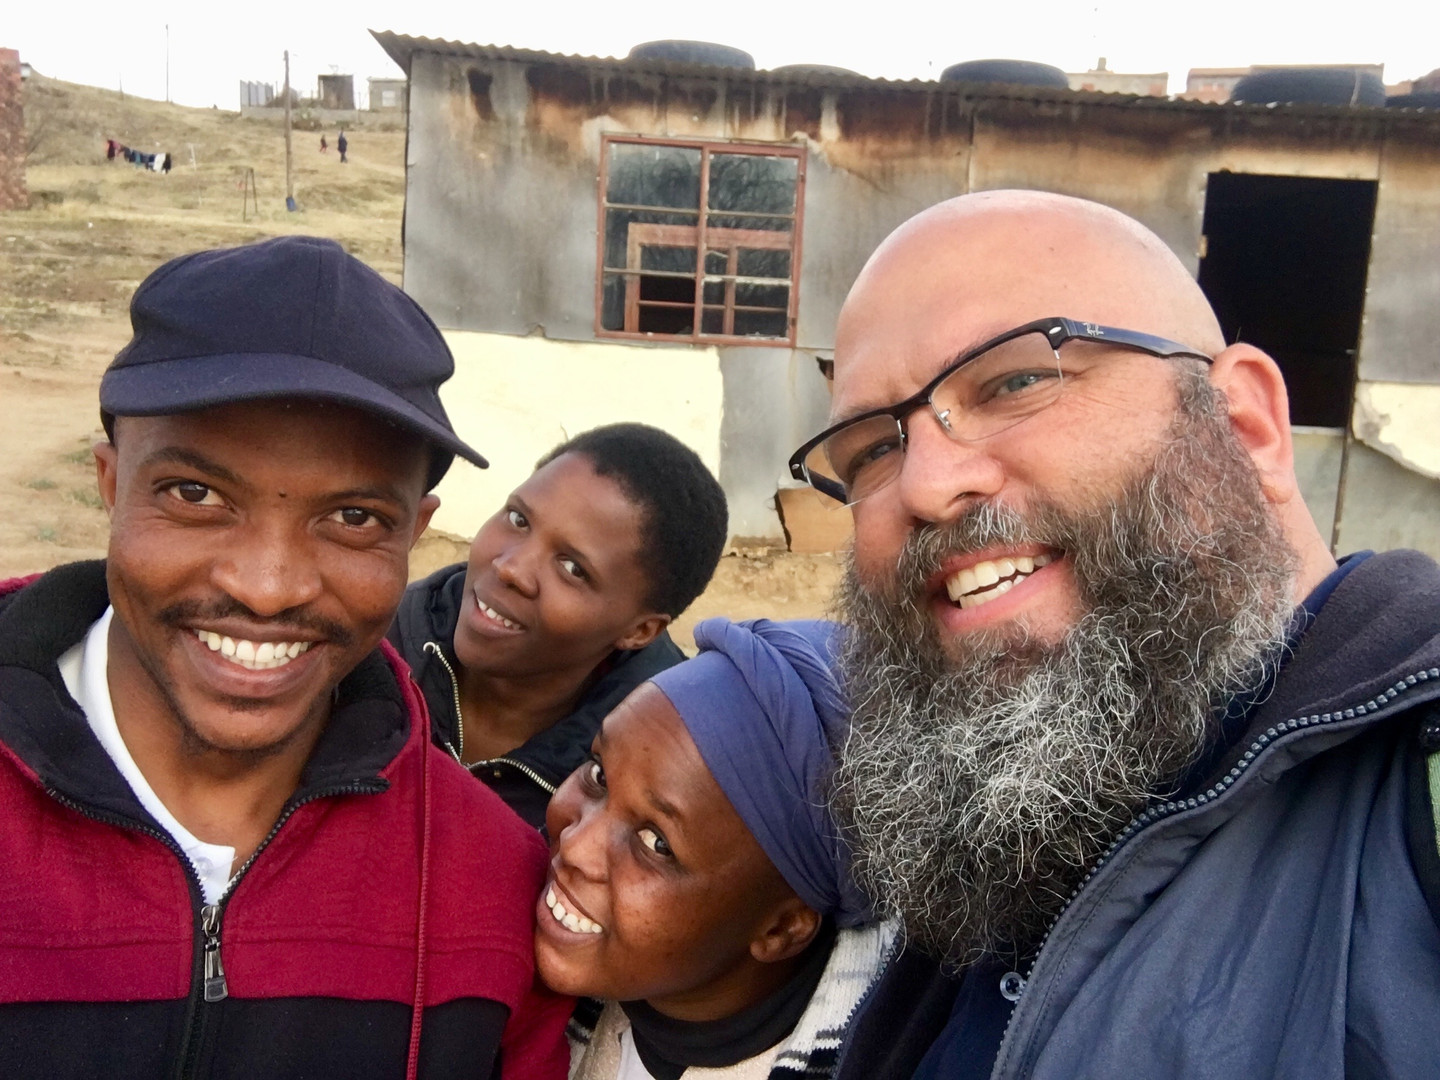 Outreach team in Maseru, Lesotho